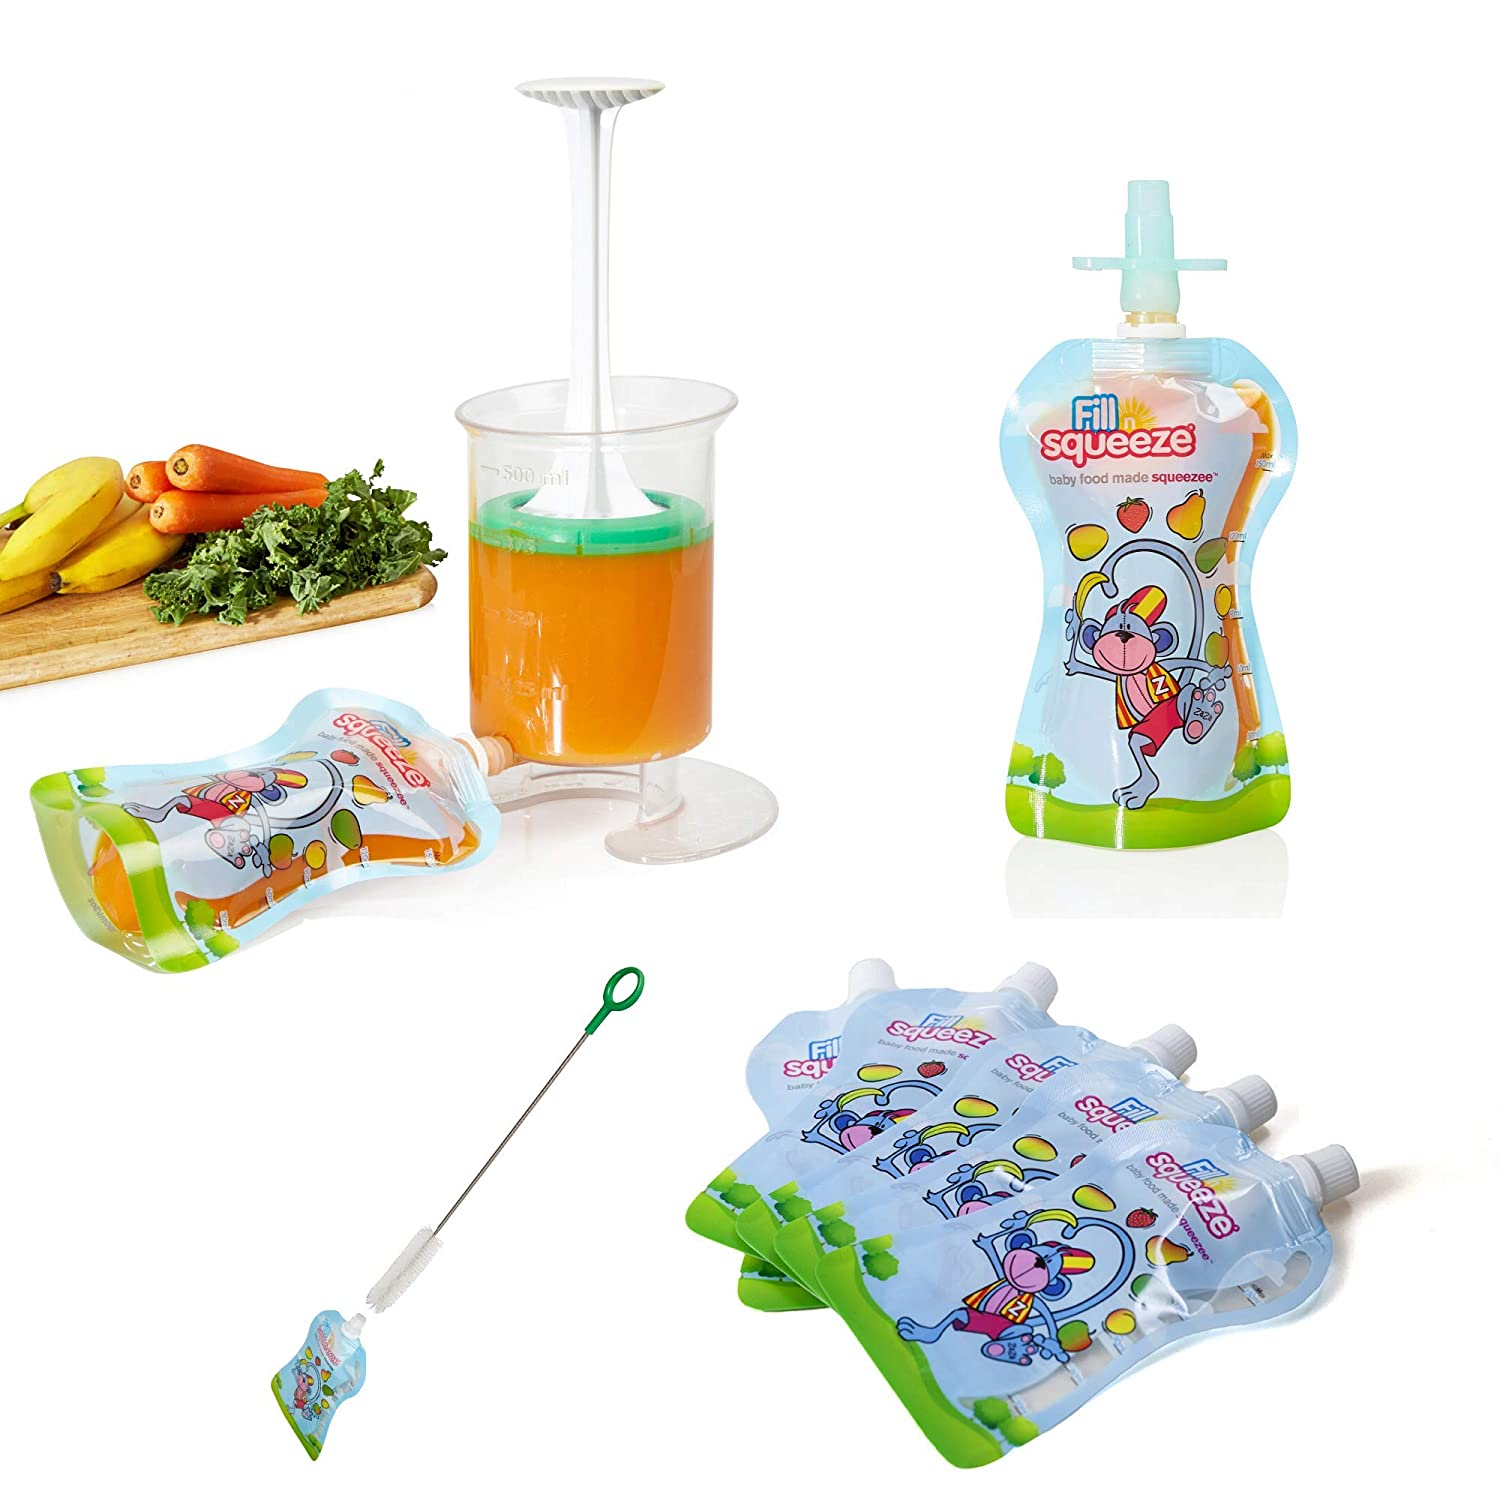 The Original Patented Fill n Squeeze Baby Weaning Pouch Filling Station for Homemade Baby Food, Apple Sauce, Smoothies,Reusable Pouches, Cleaning Brush & Filling Food Station (Special Price)